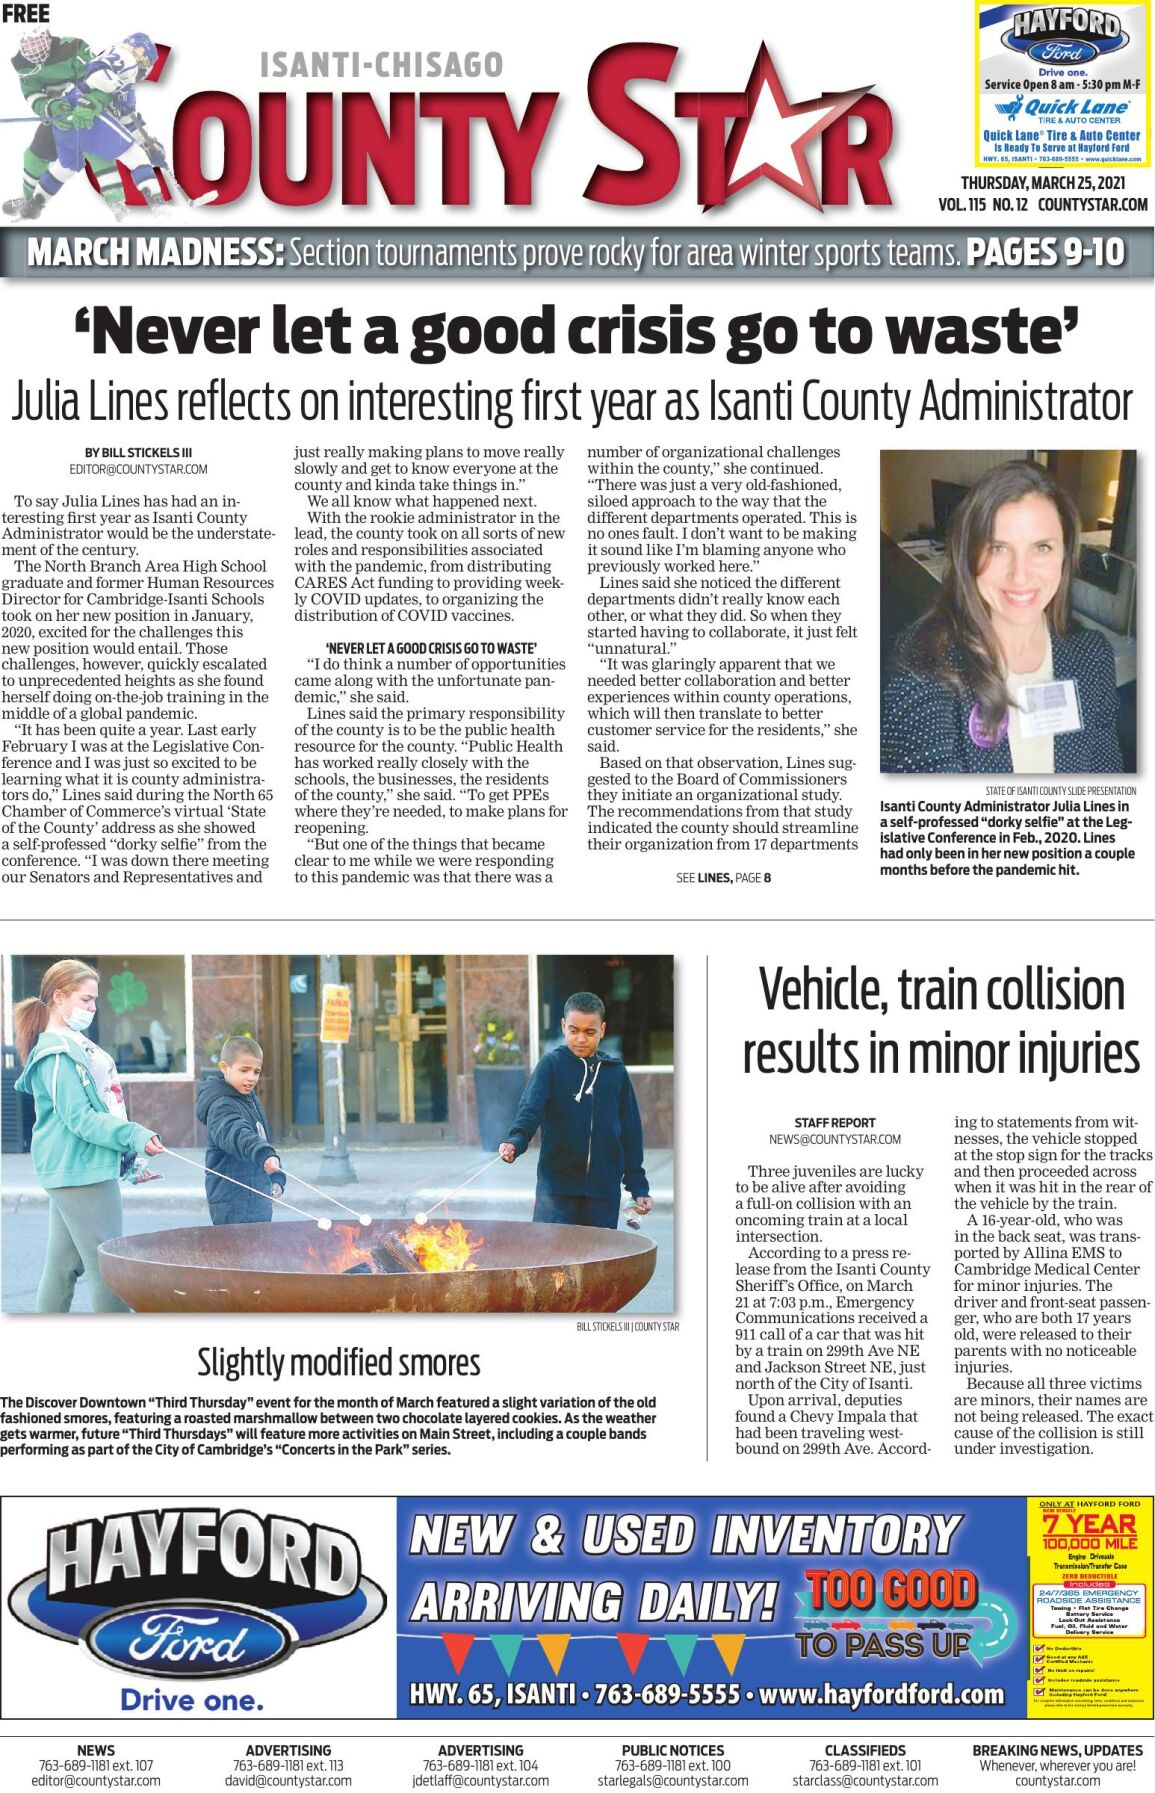 Isanti-Chisago County Star March 25, 2021 e-edition